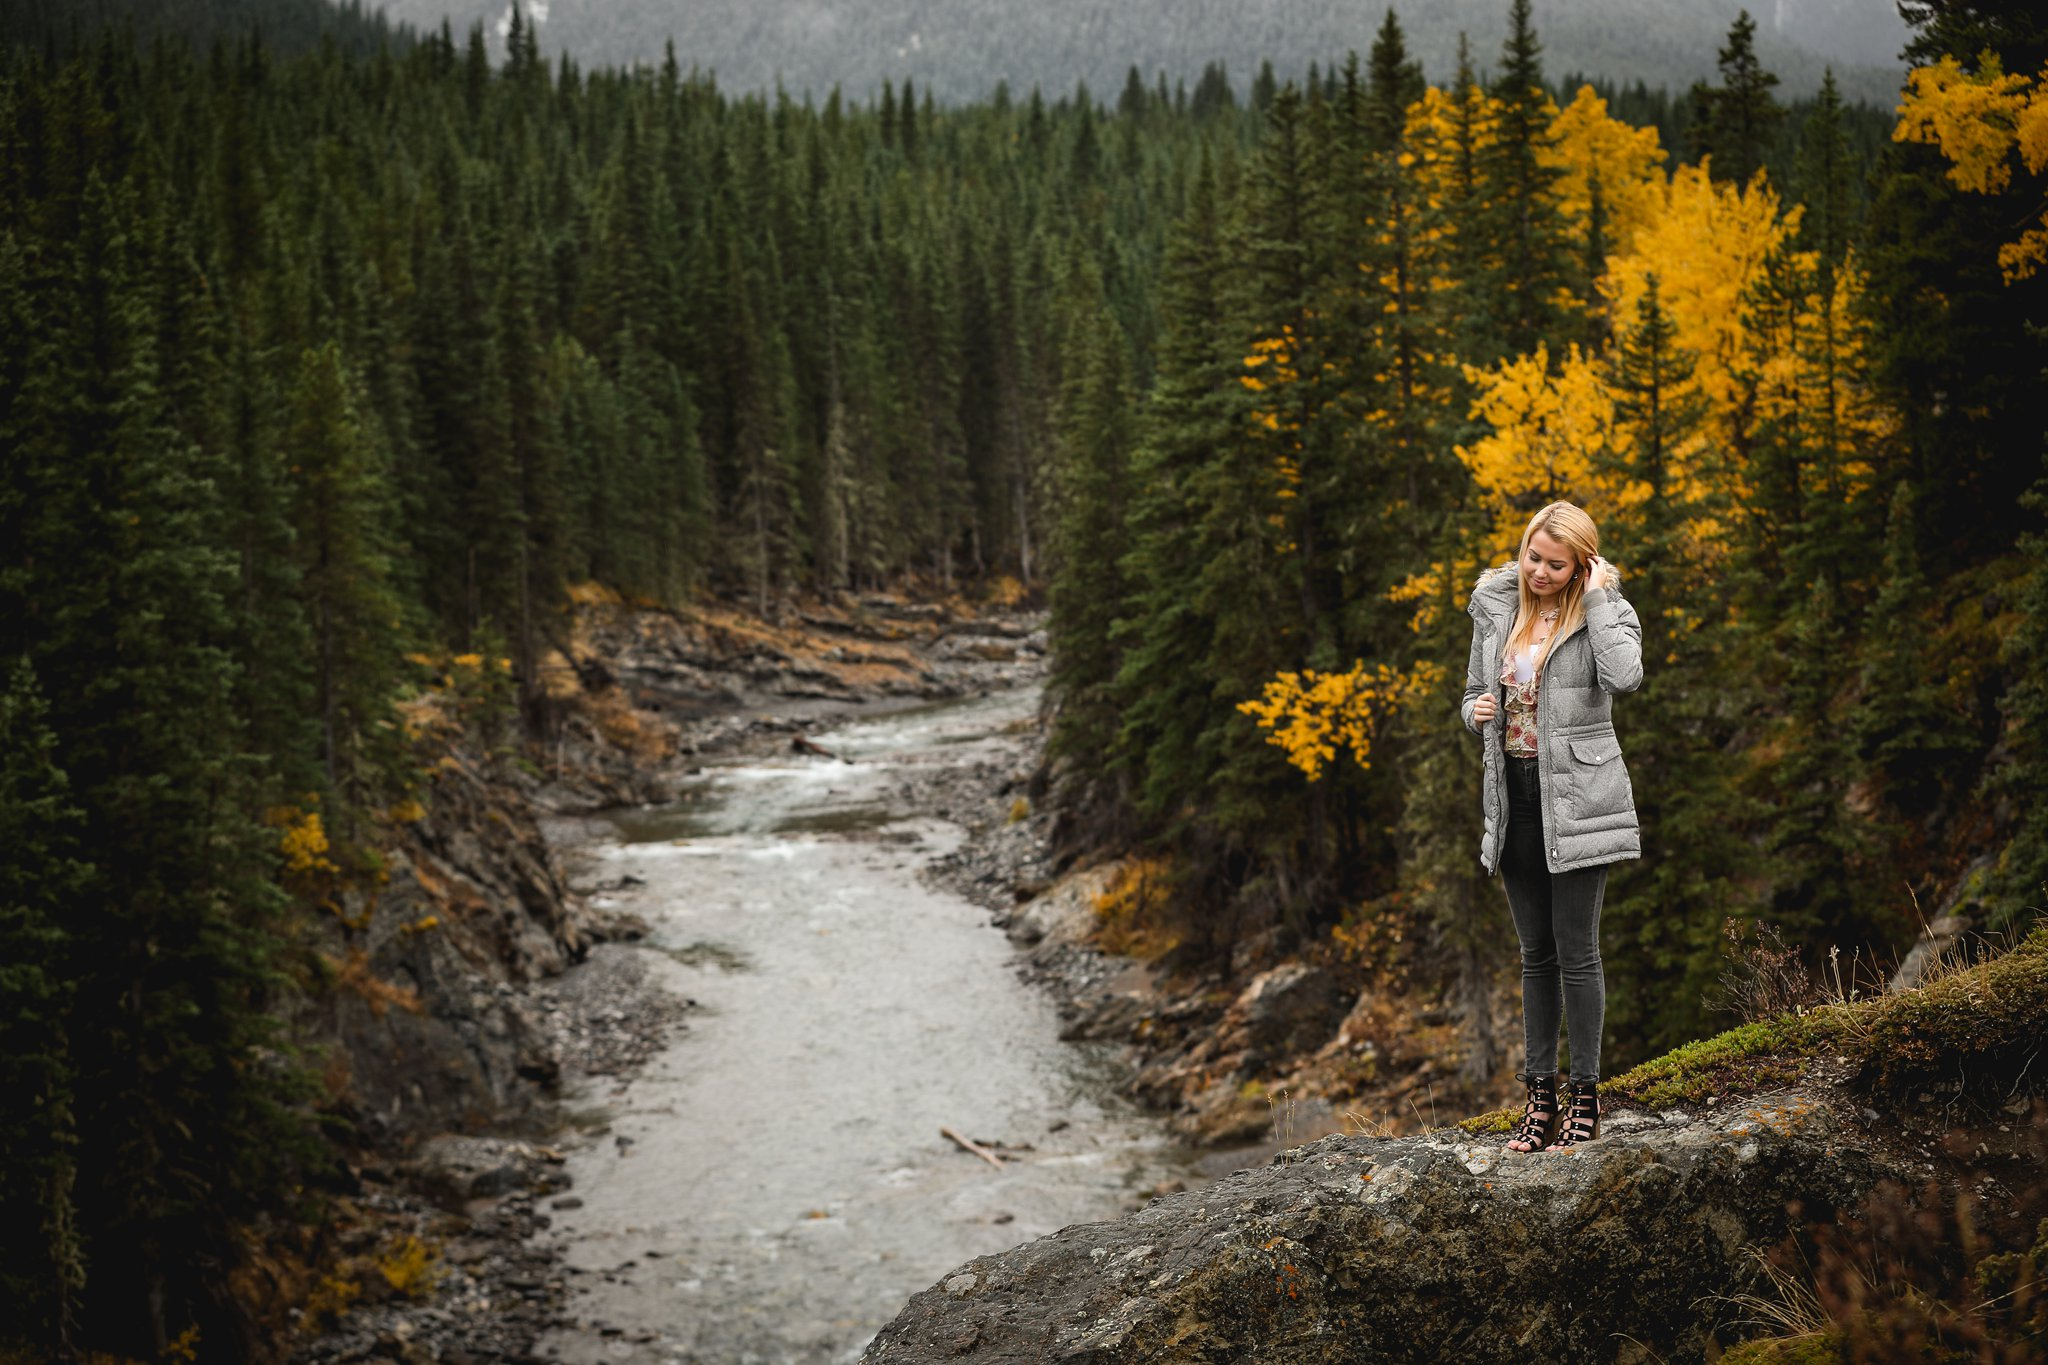 AshleyDaphnePhotography Calgary Photographer Wedding Family Senior Portraits Rocky Mountains Sheep River Falls Autumn Fall_0018.jpg